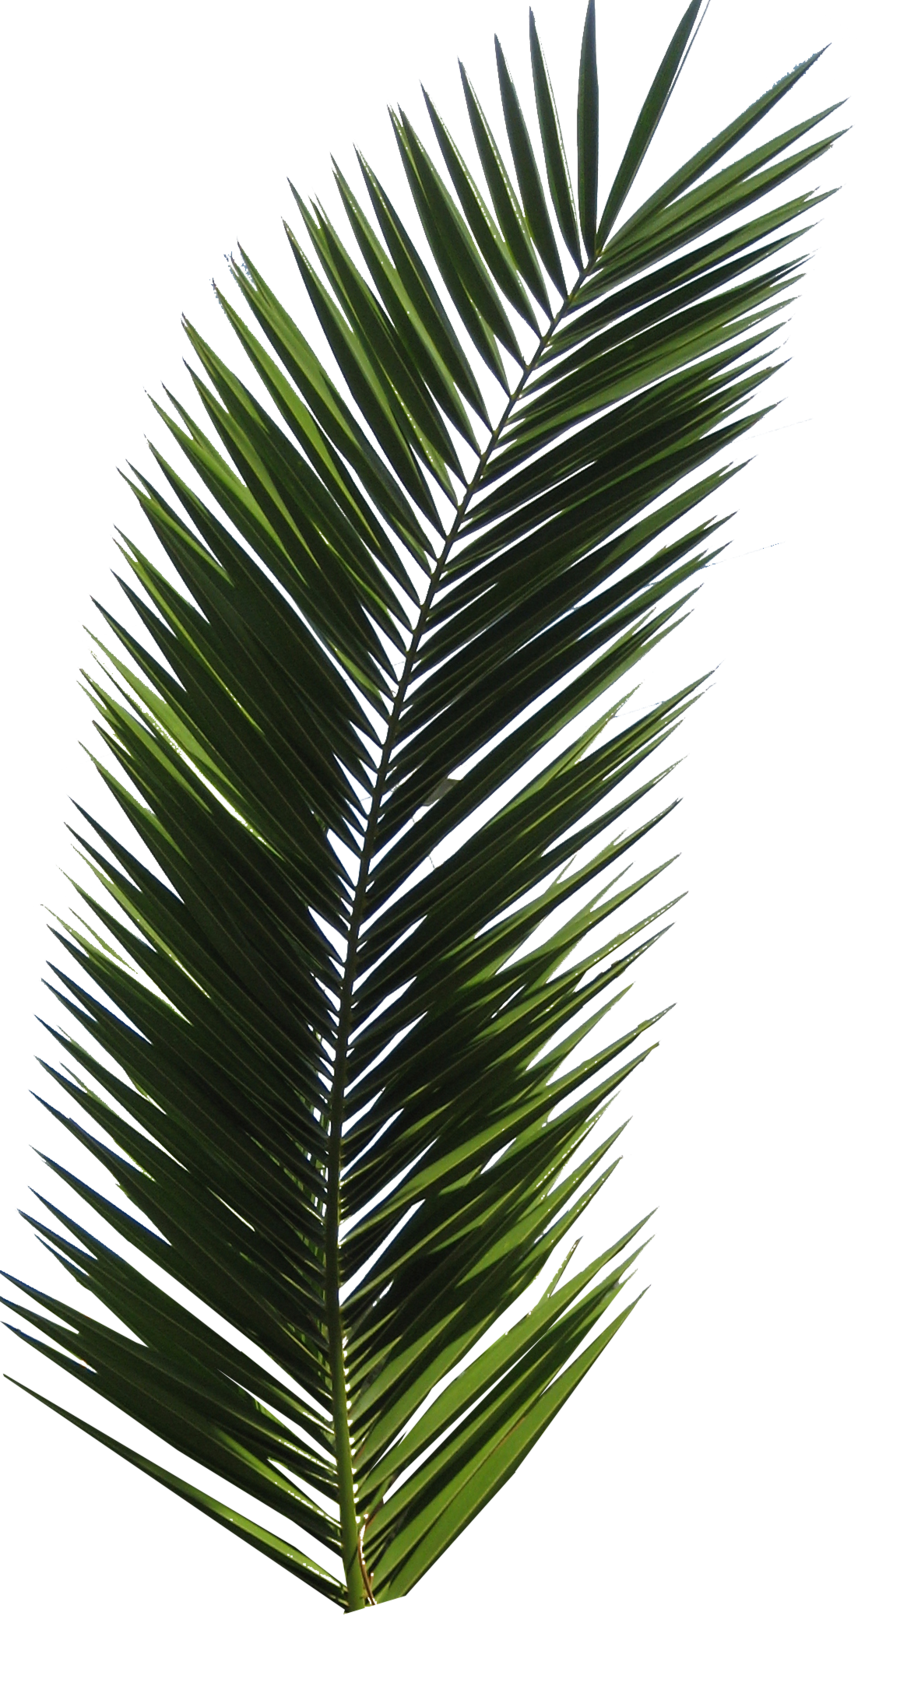 Tree images download free. Palm leaf png transparent jpg freeuse library